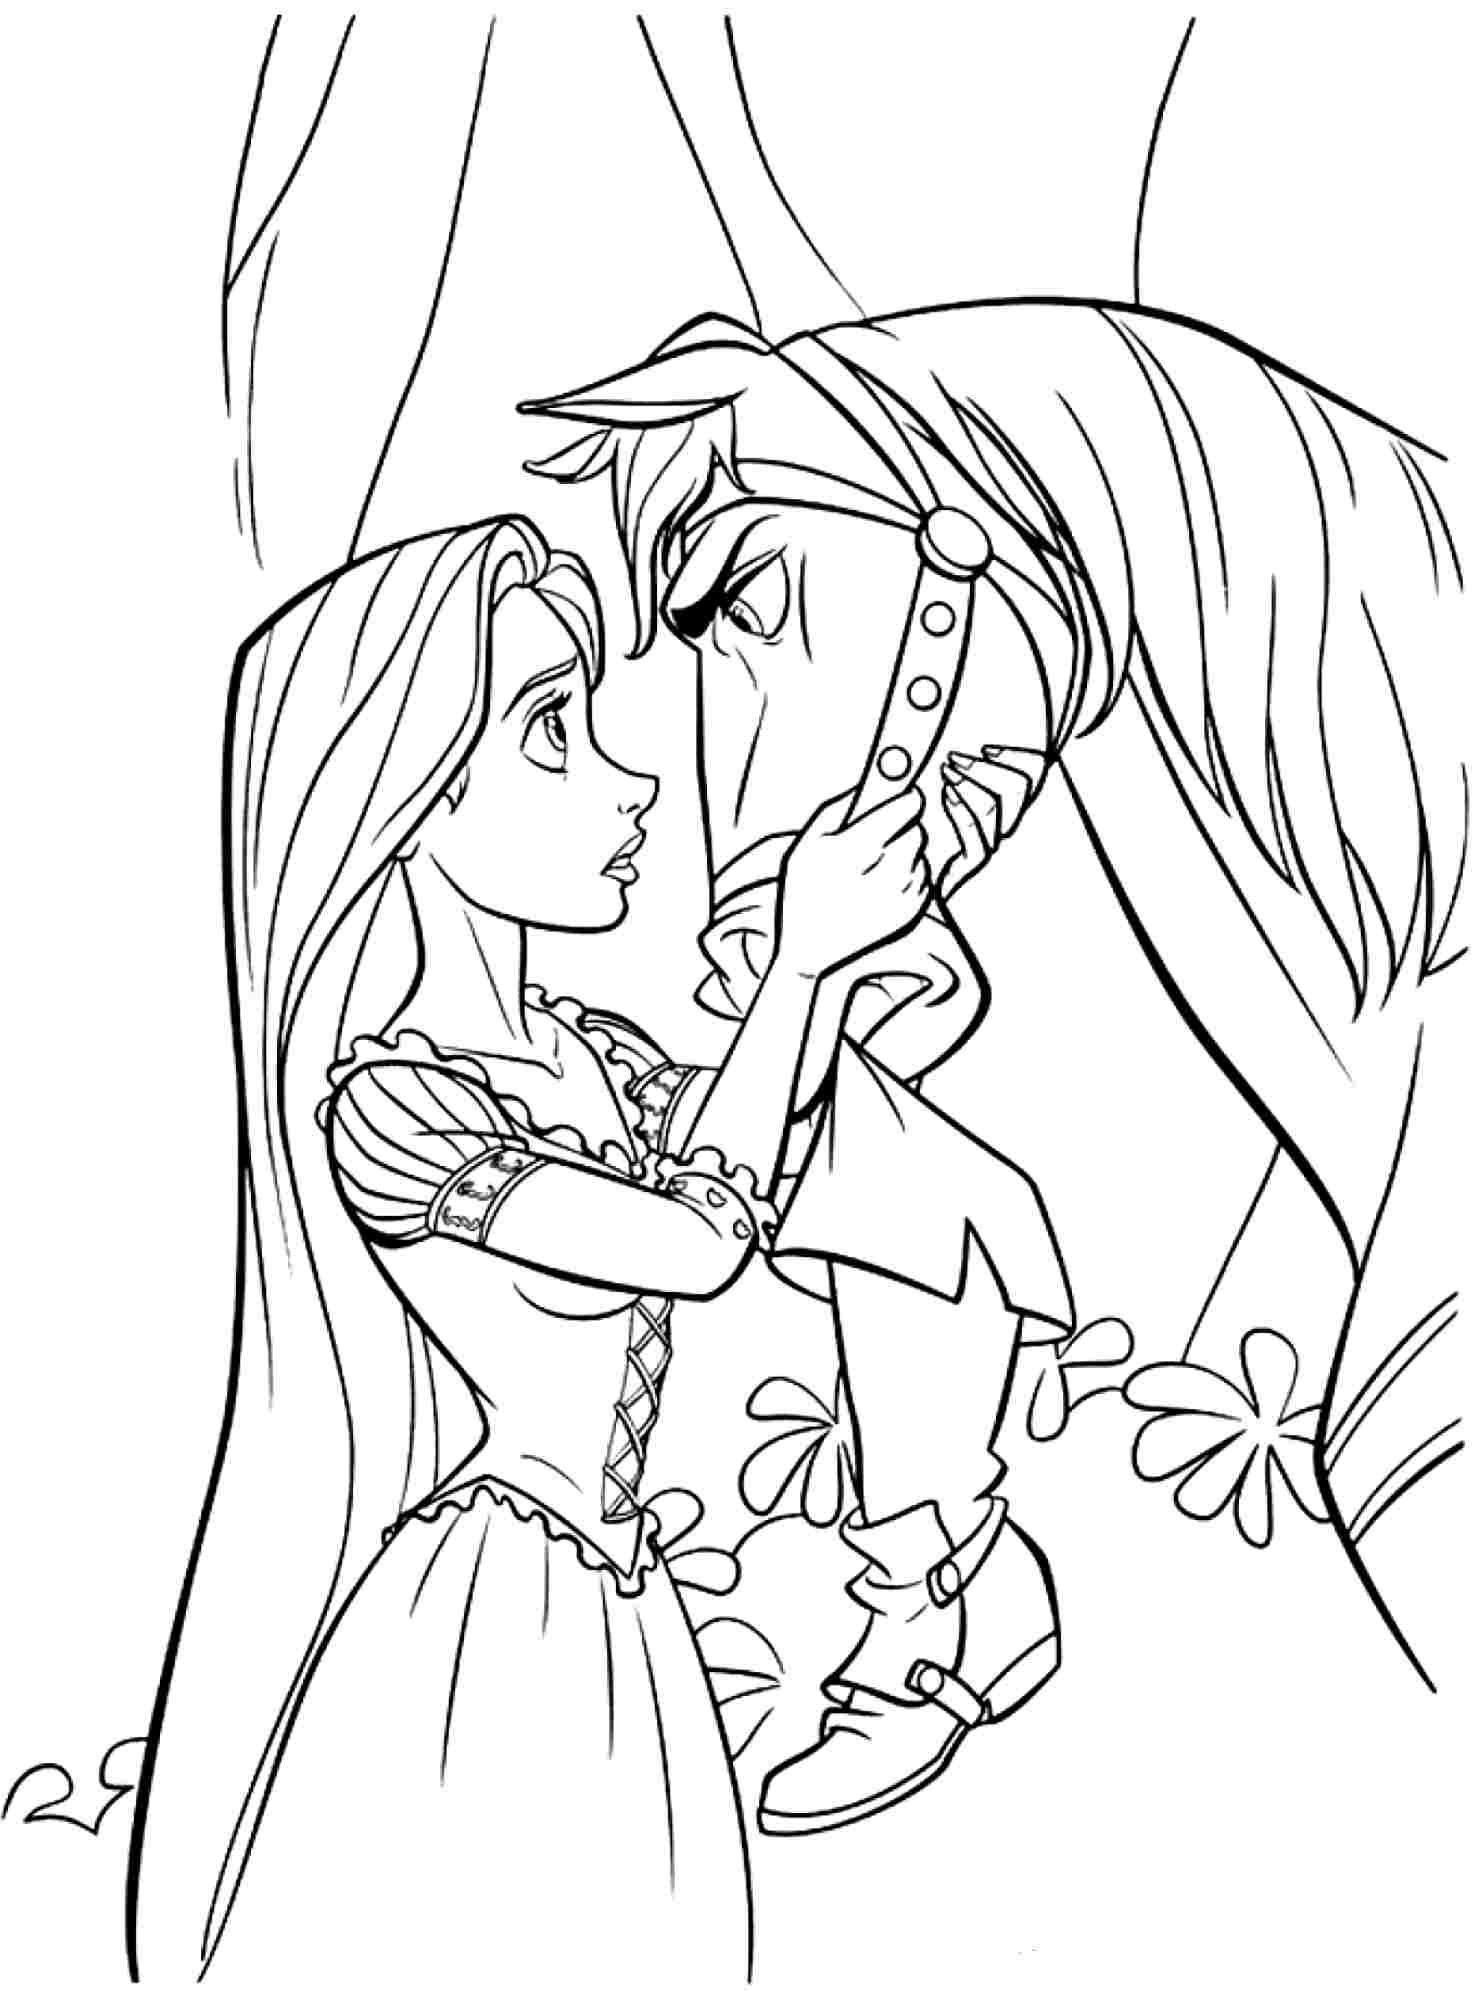 free disney princess tangled rapunzel coloring sheets for kids boys